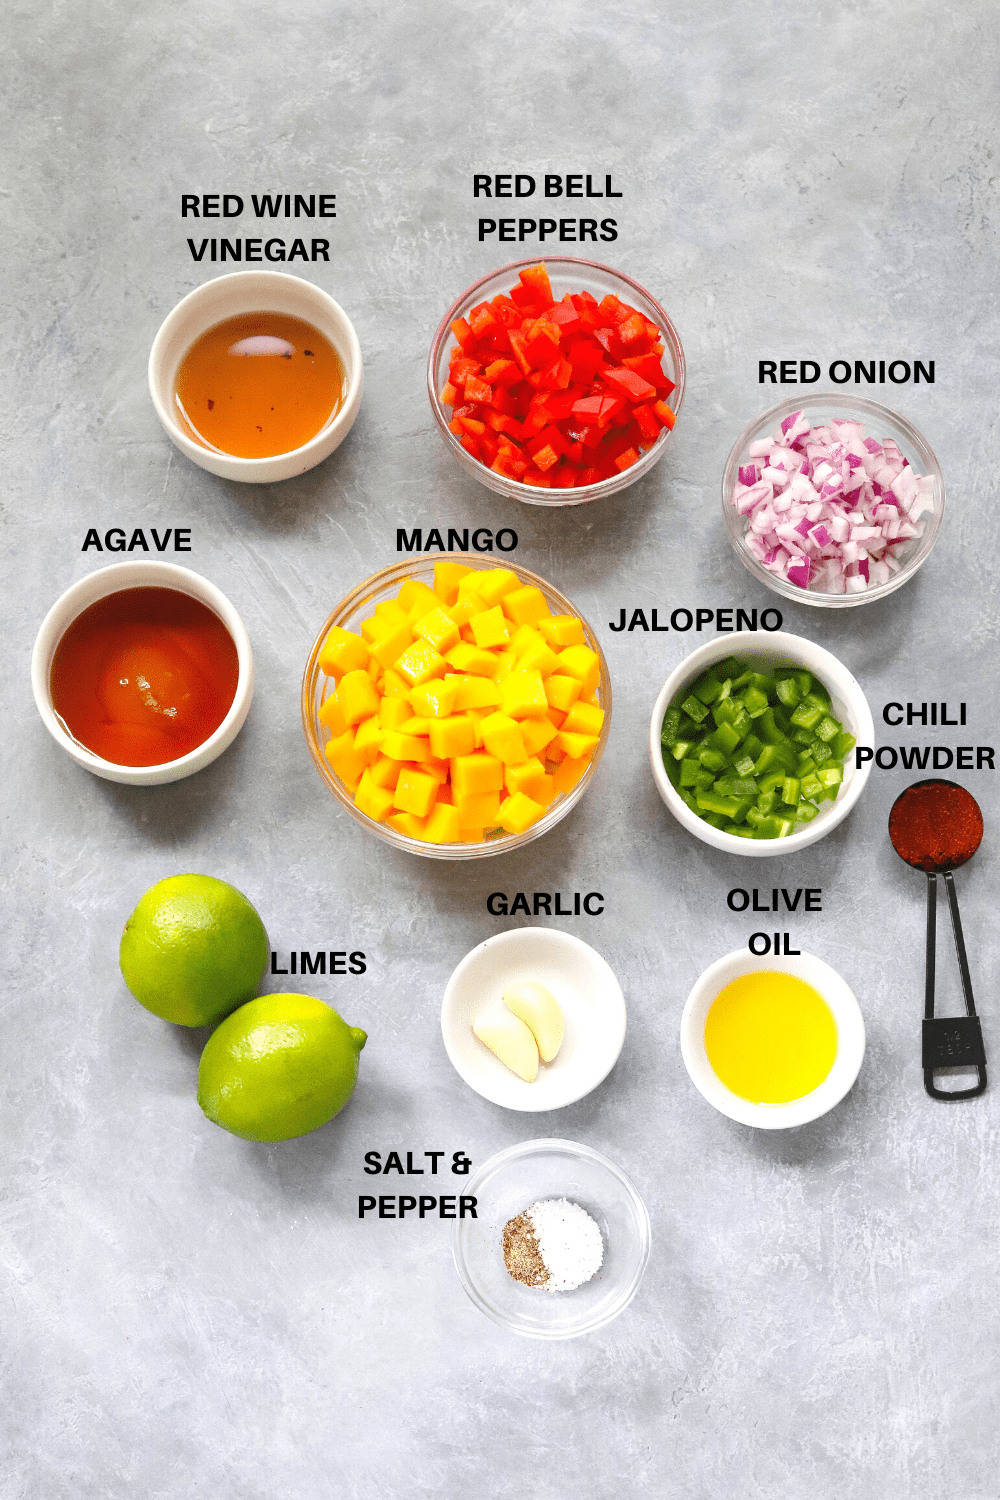 Diced mangoes, red bell peppers, red onion, jalopeno and other salsa ingredients on a gray board